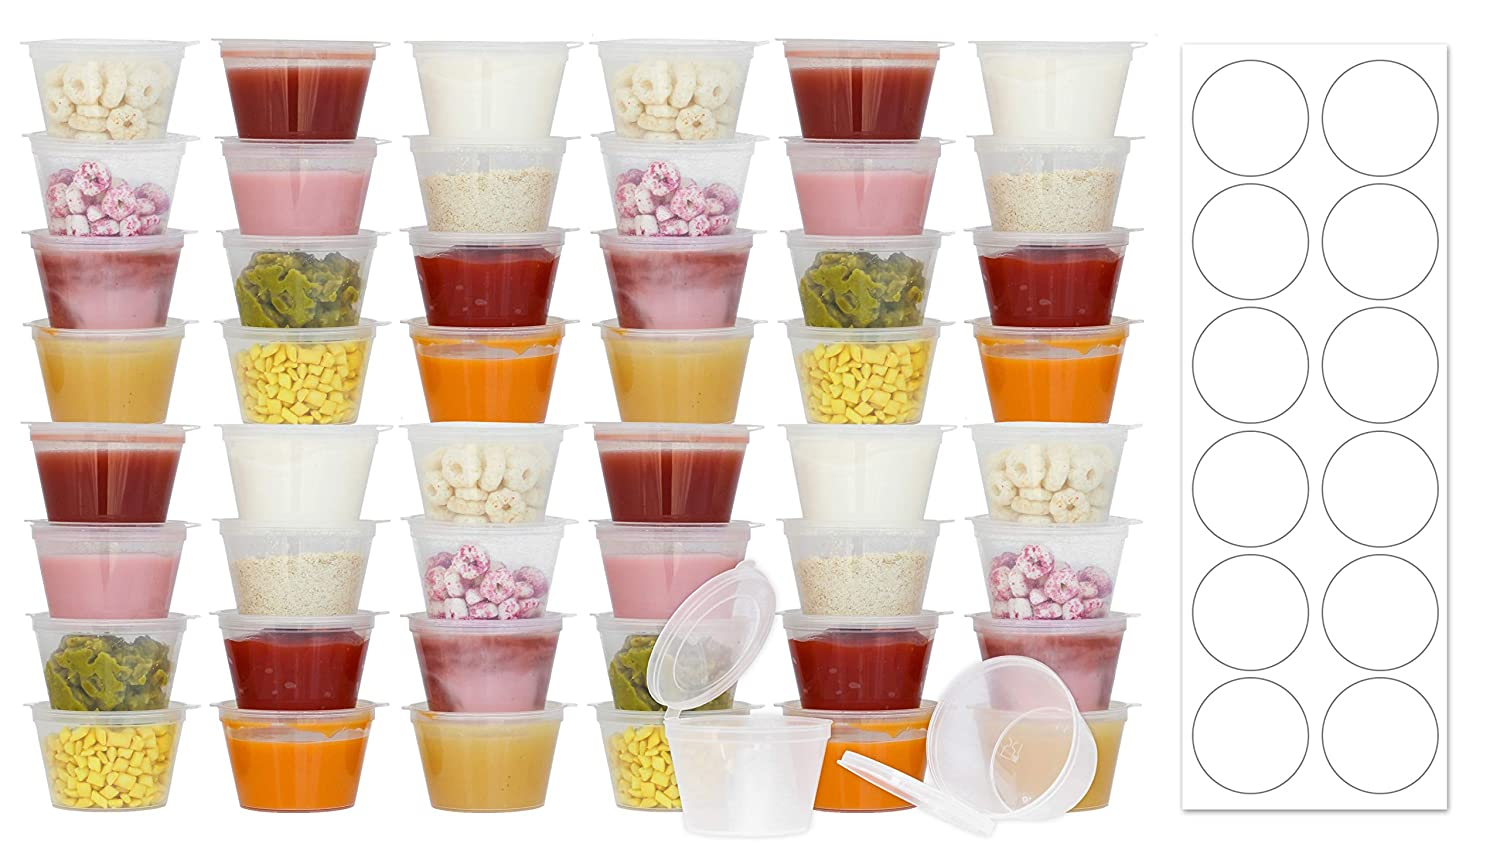 50 Pack BPA-Free Baby Food Freezer Storage Containers Hinged Lids (3 oz) Labels | Leak-Proof | Travel Snack Cups | Store Homemade, Organic Purees | Freezer Dishwasher Safe